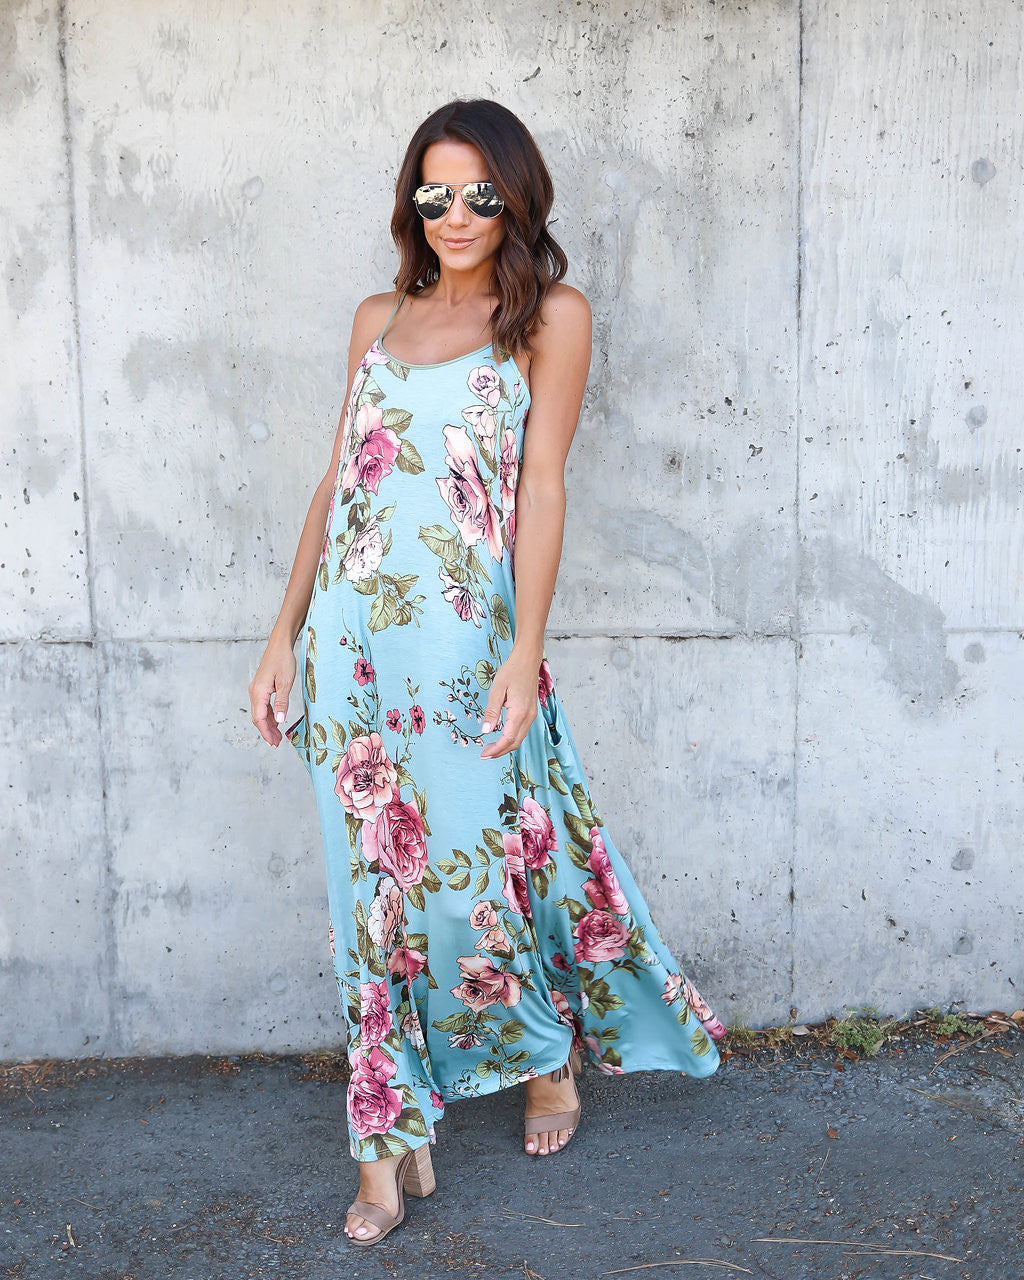 Jacqueline Floral Pocketed Dress - FINAL SALE